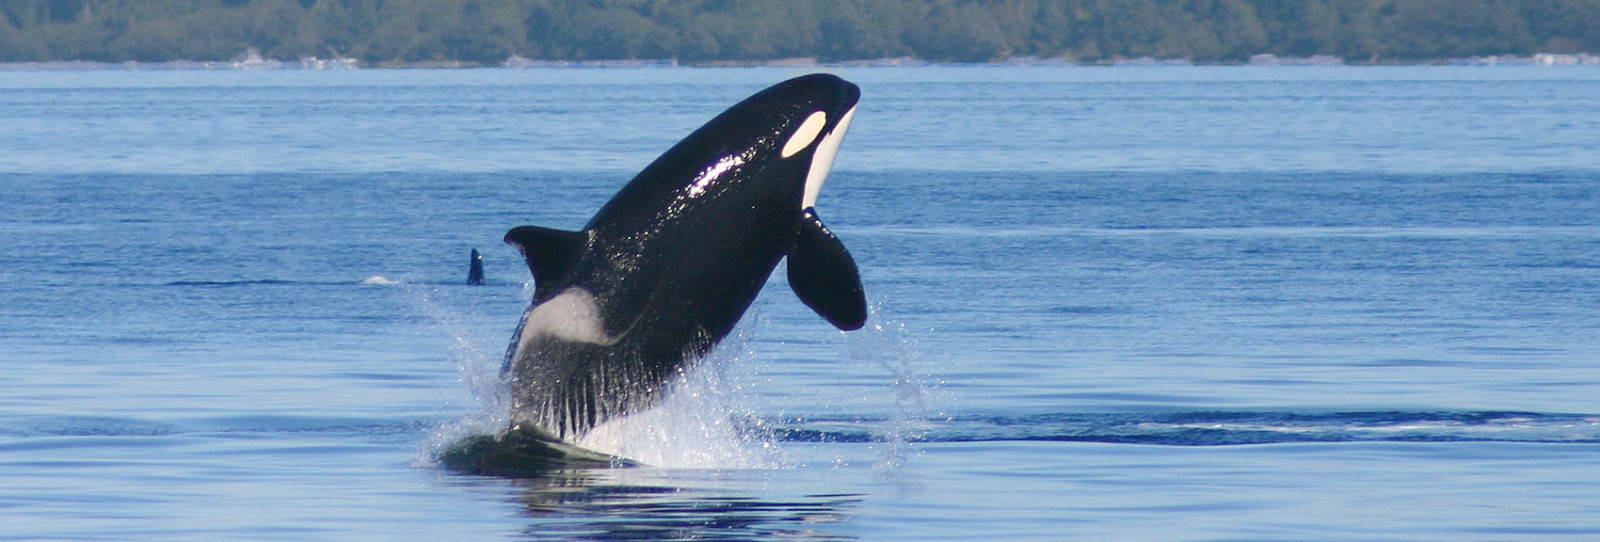 orcas in the san juan islands - san juan island wildlife